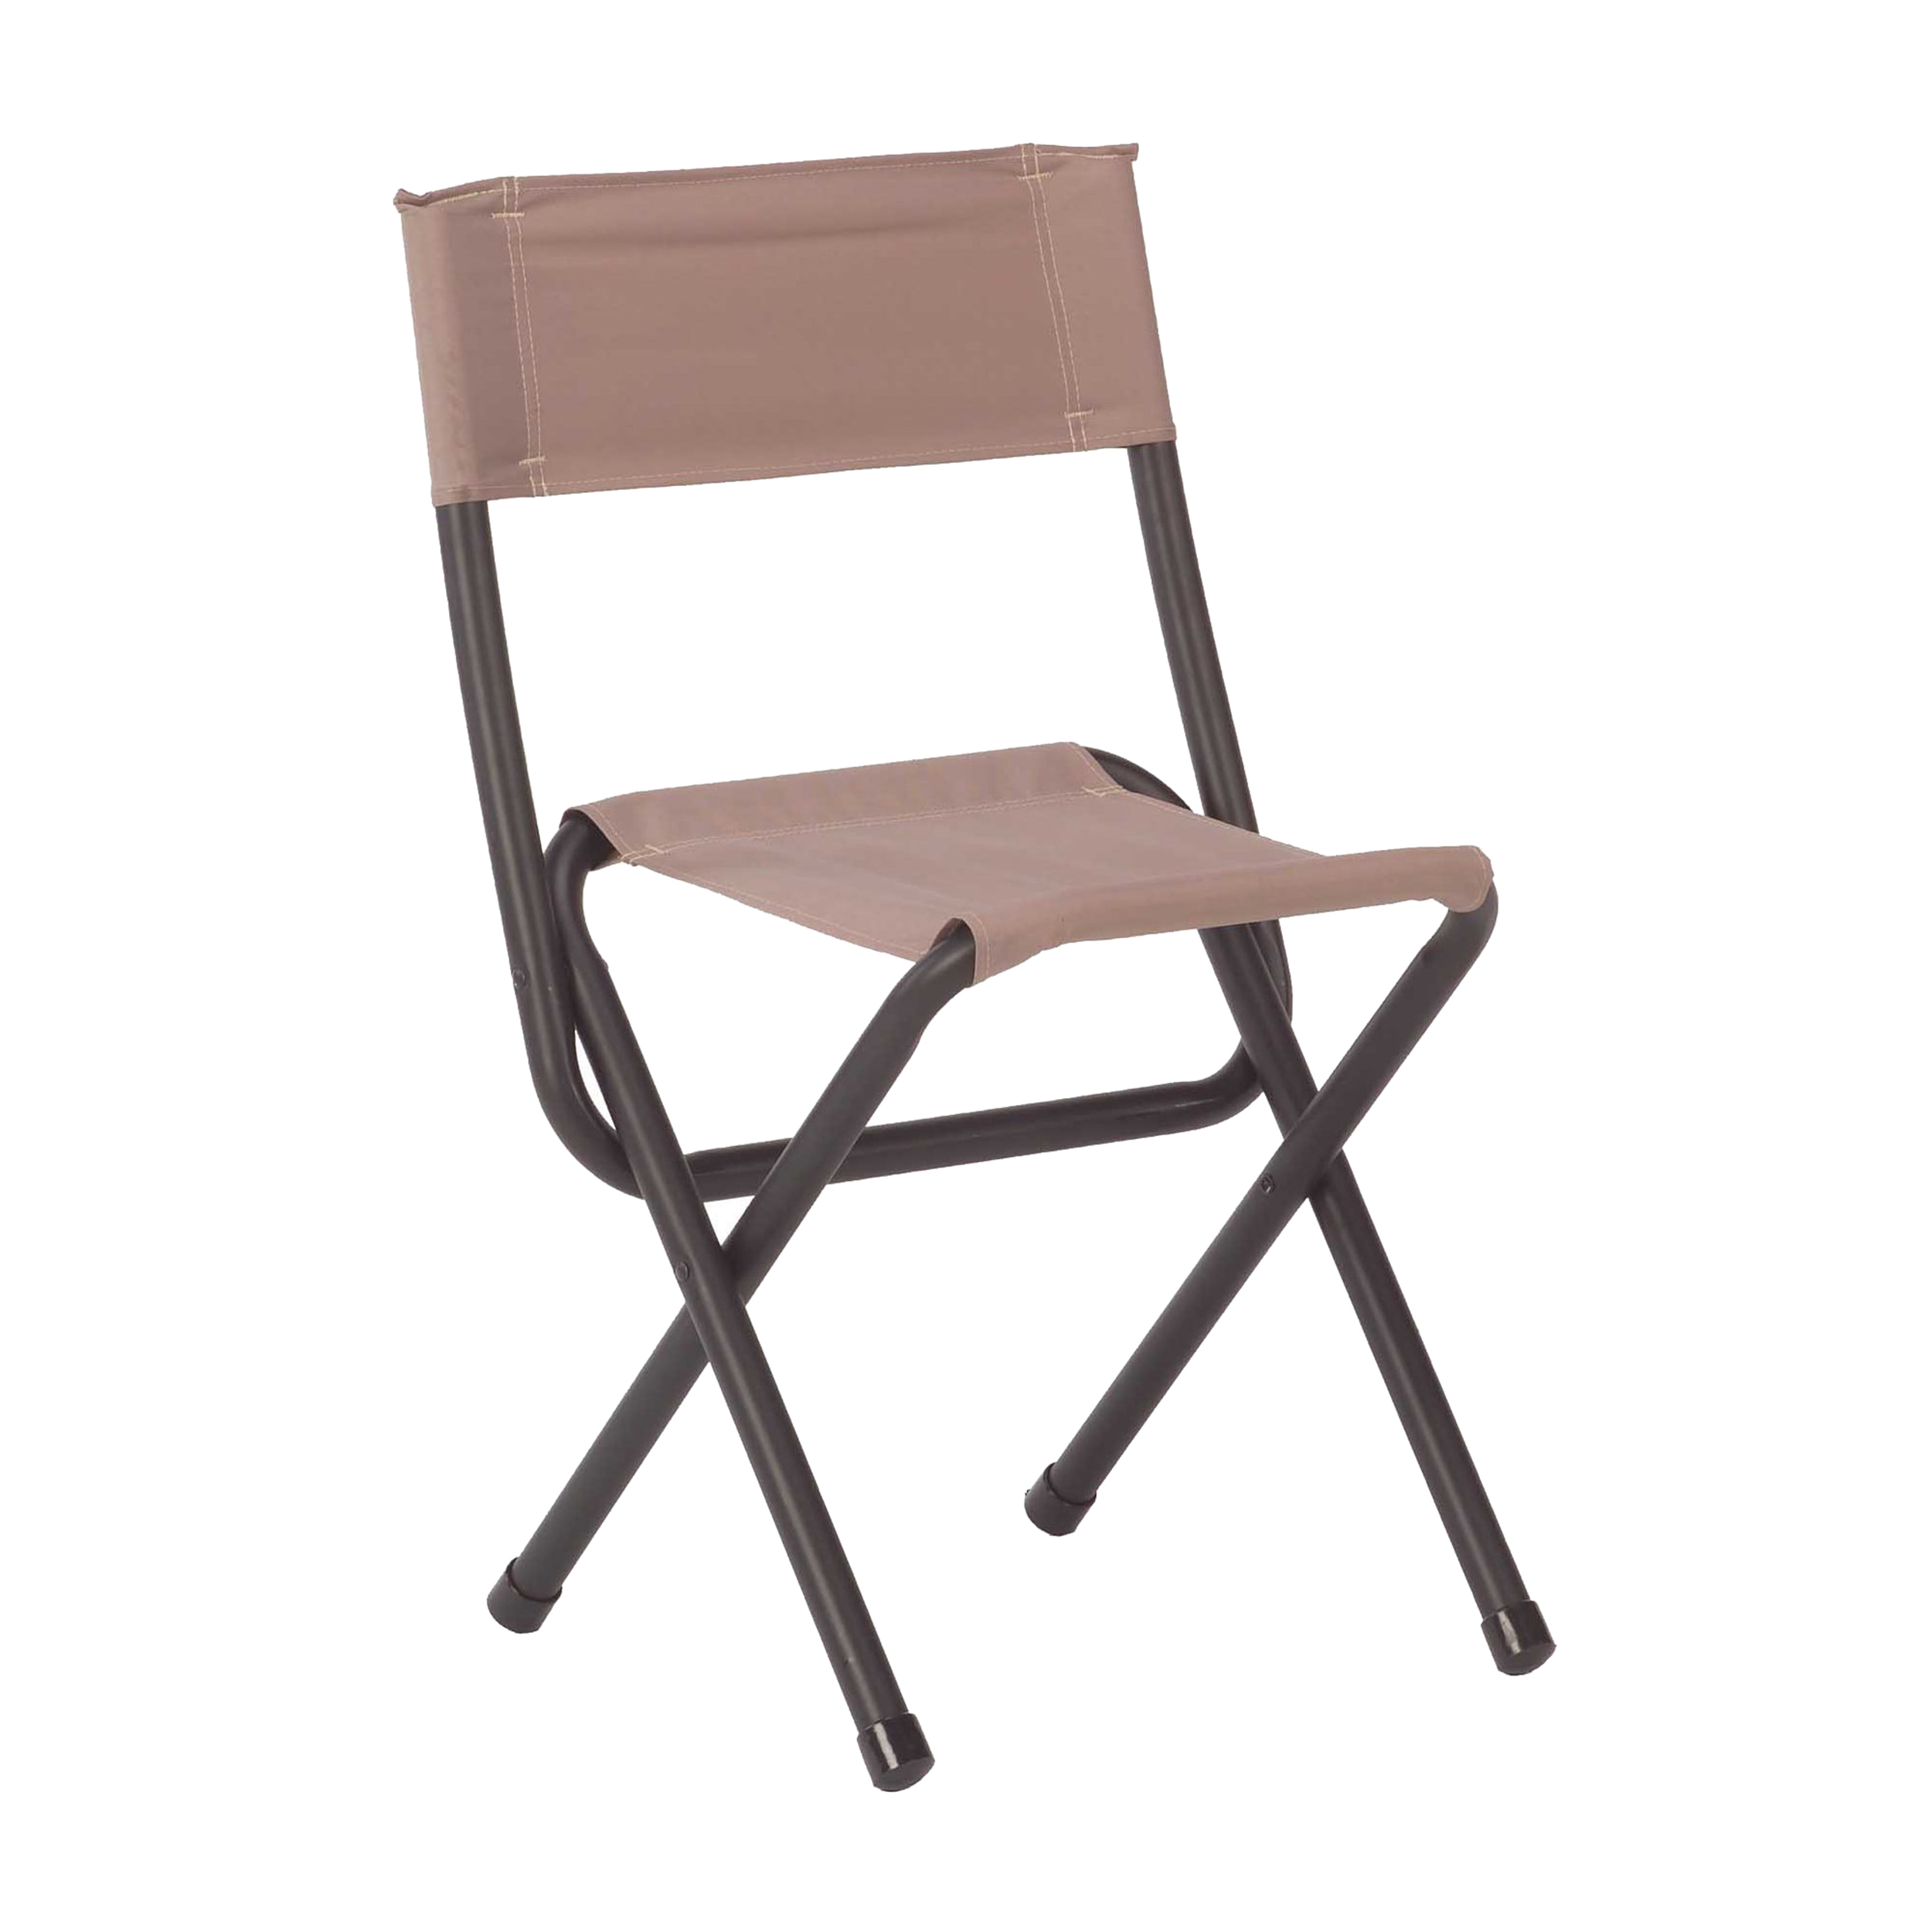 Coleman Chair Woodsman II Walmart